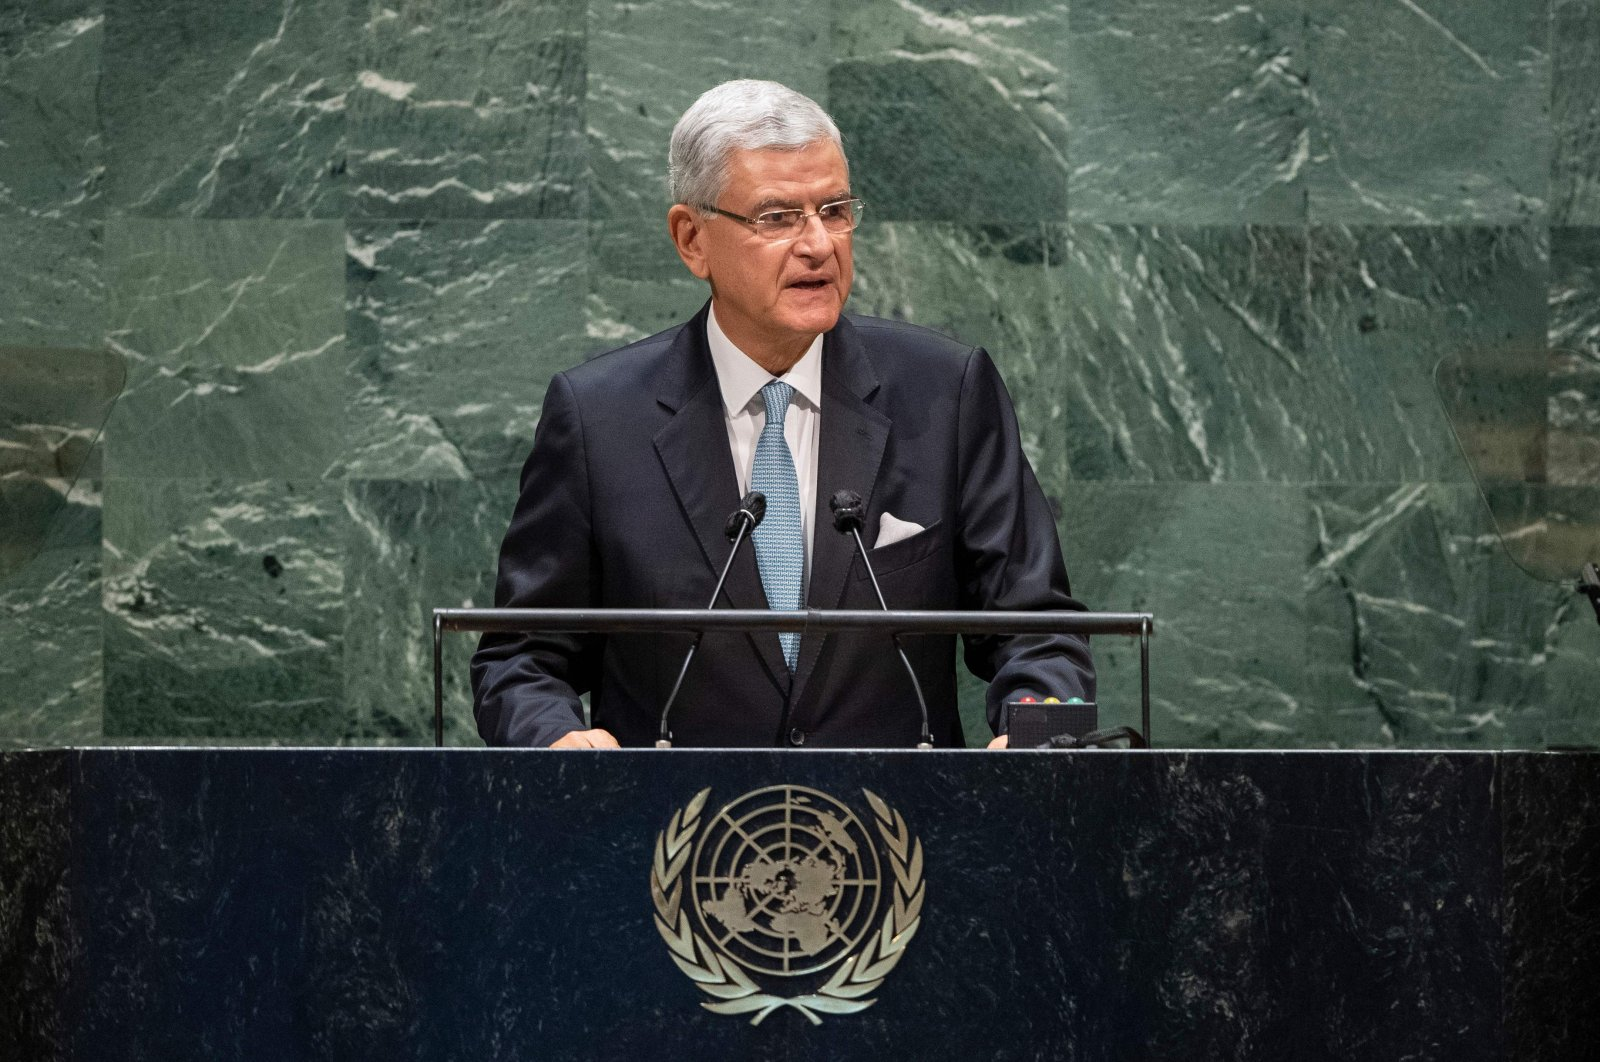 Volkan Bozkır, President of the 75th session of the United Nations General Assembly, opens the general debate, Sept. 22, 2020, at the U.N. in New York. (AFP Photo)